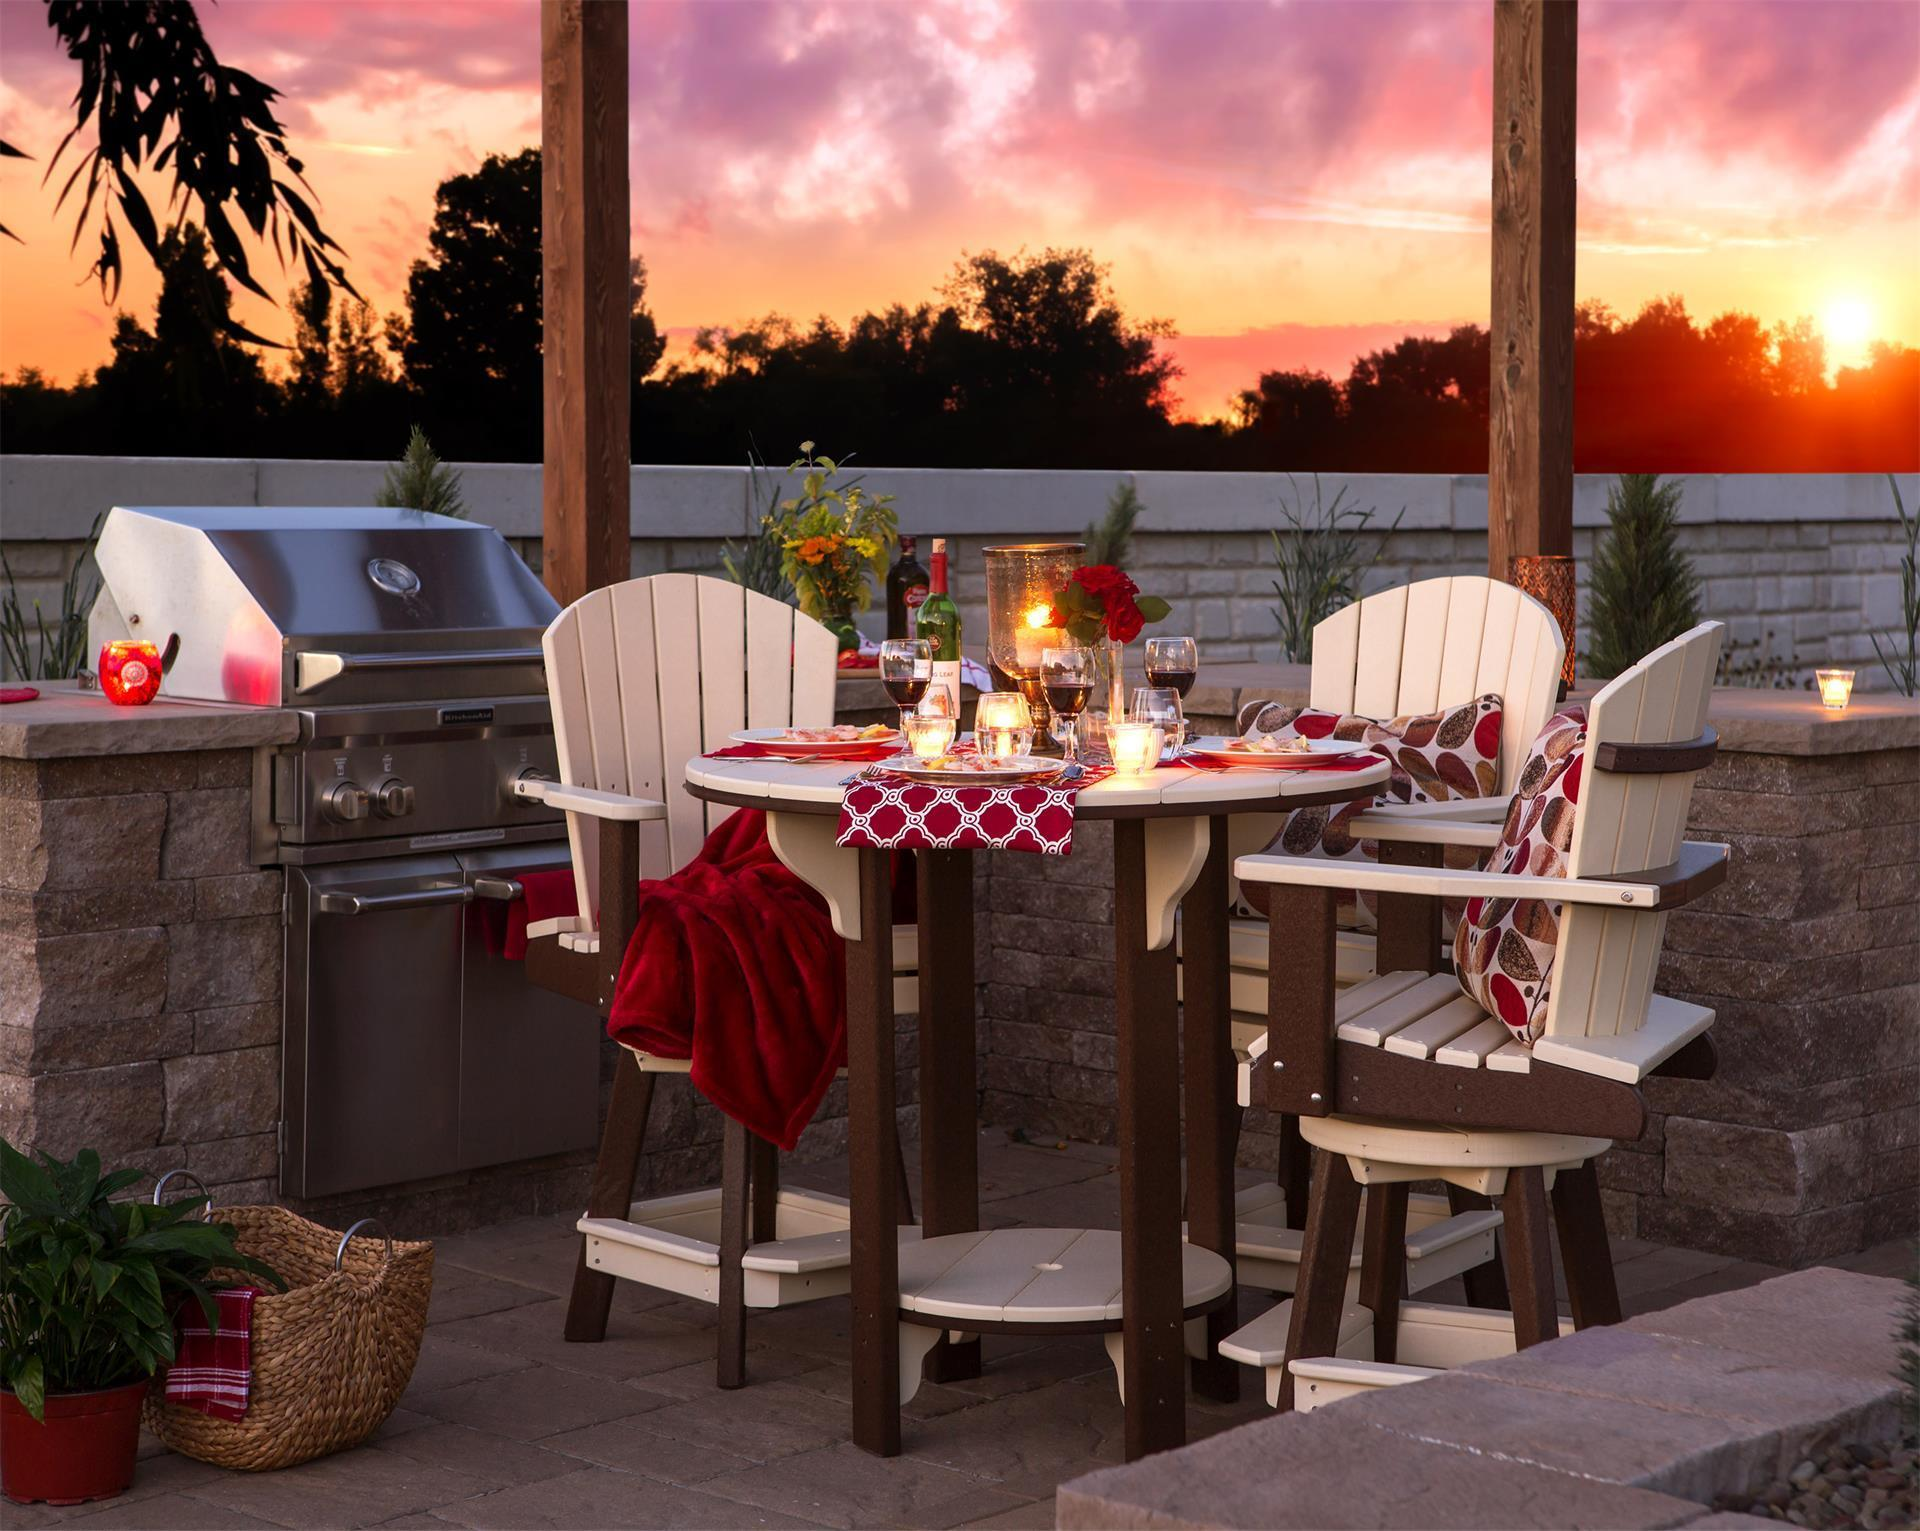 Outdoor Dining Table Chair Set